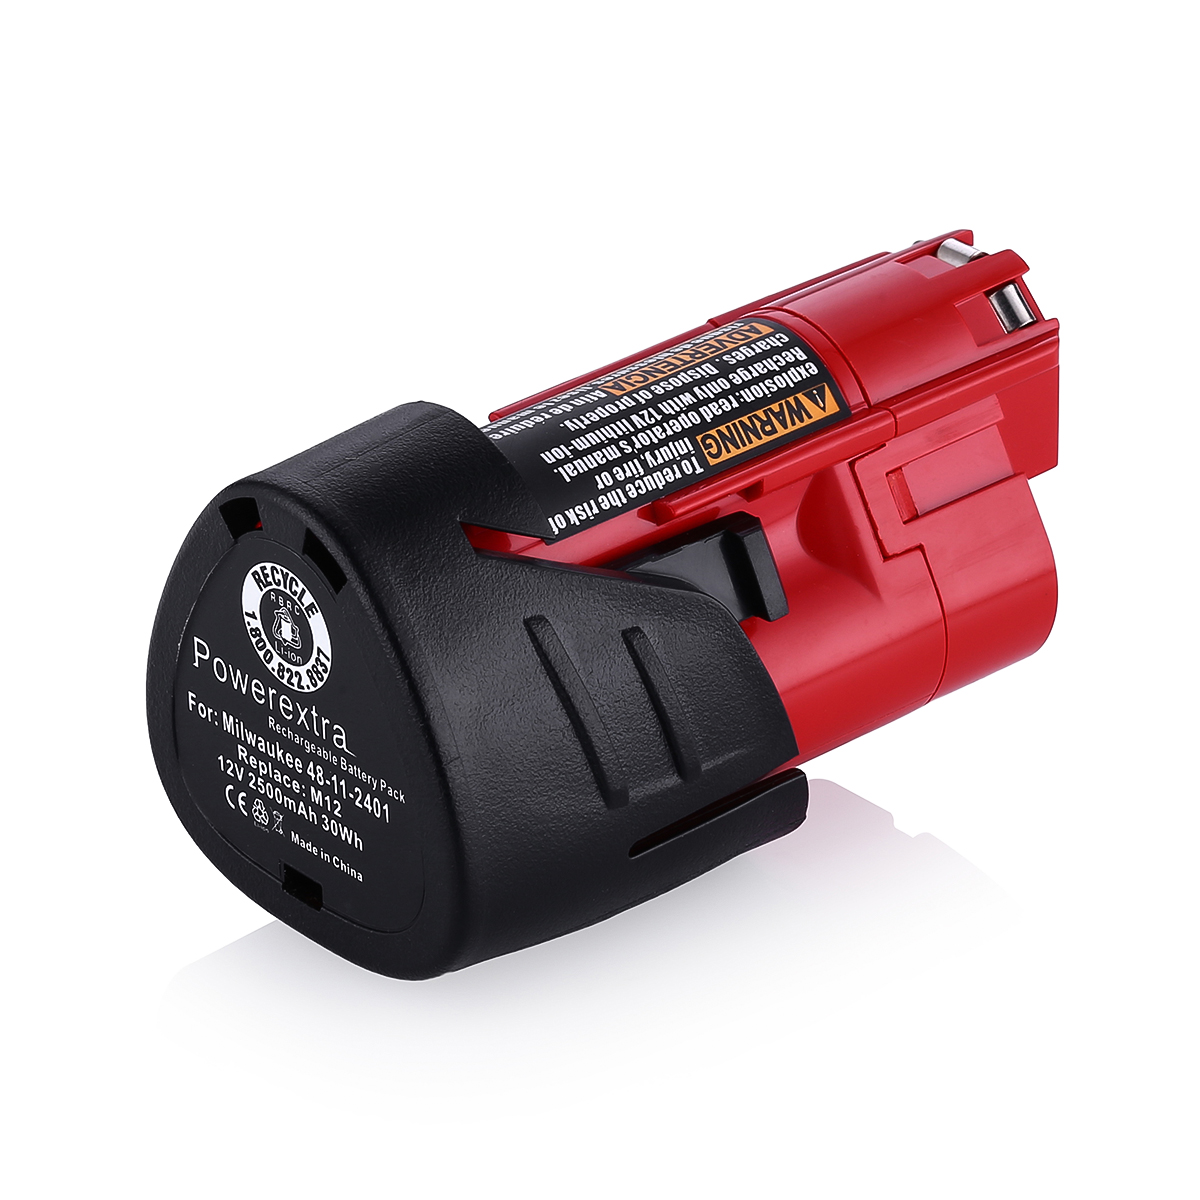 New 12V 2500mAh Milwaukee 48-11-2401 M12 12 Volt Red ...